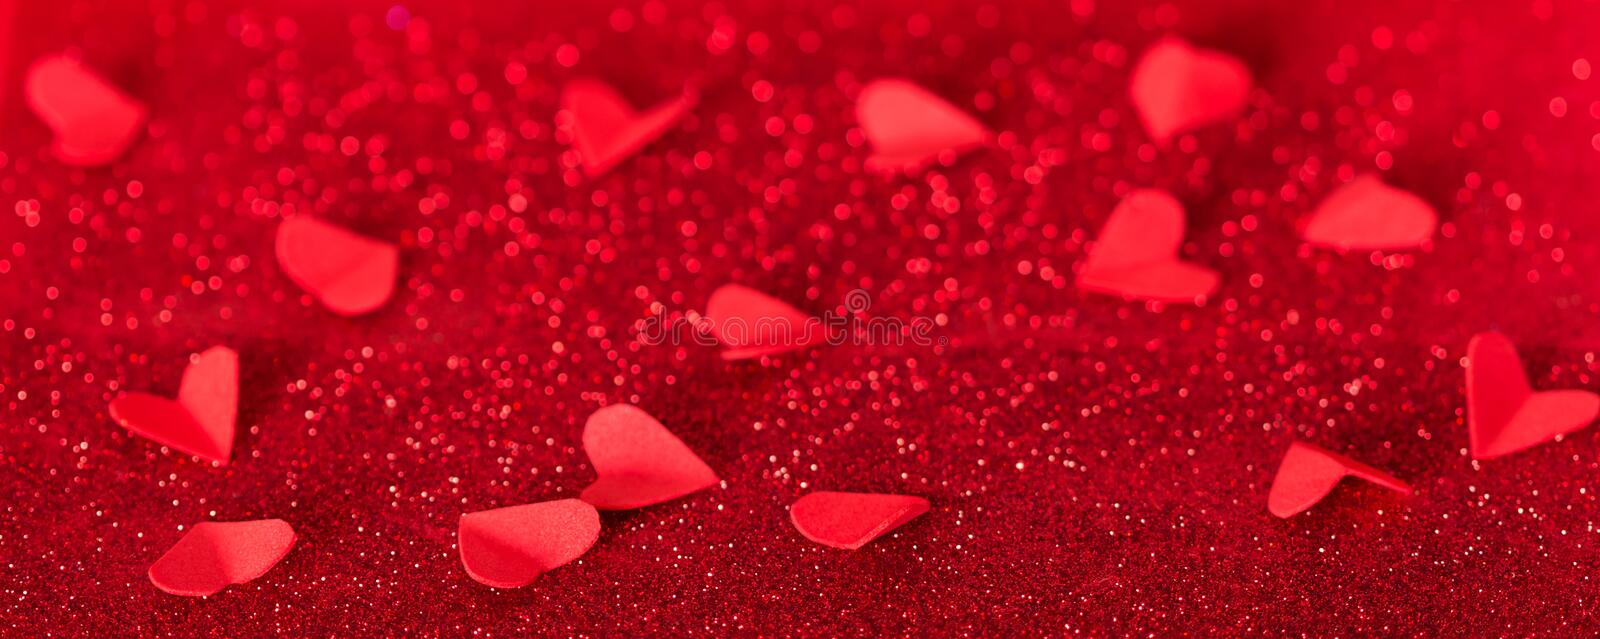 Valentine`s day. Many red hearts on background of shining crystals royalty free stock photos